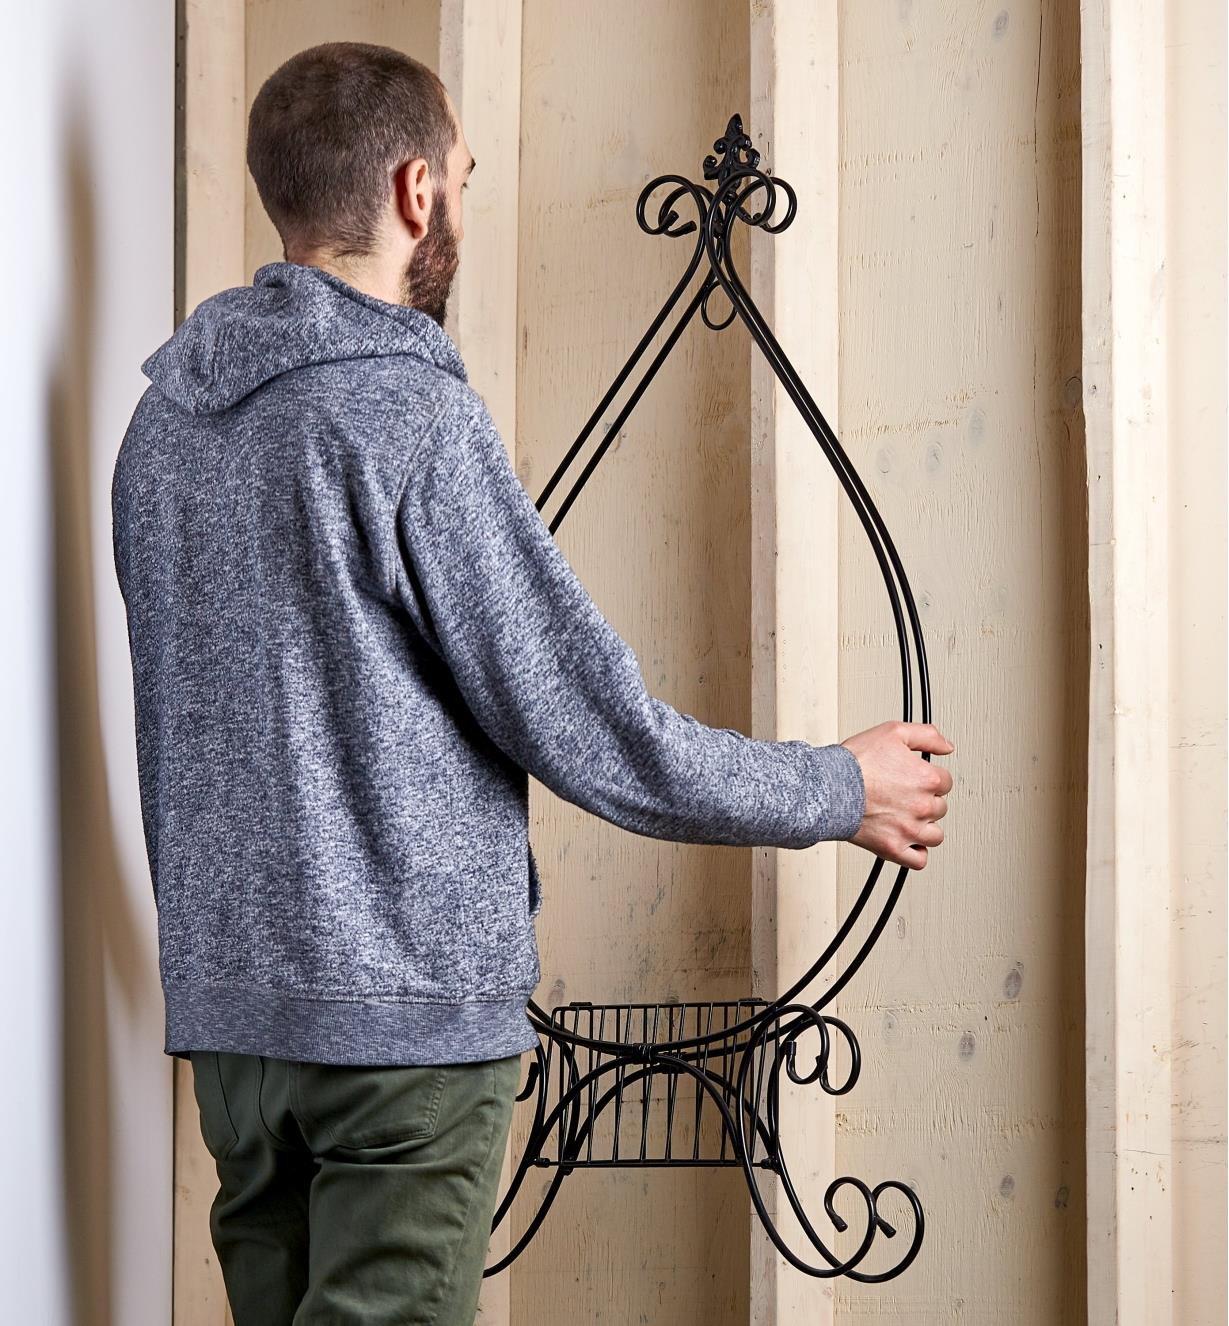 A man carrying the folding plant stand into a shed